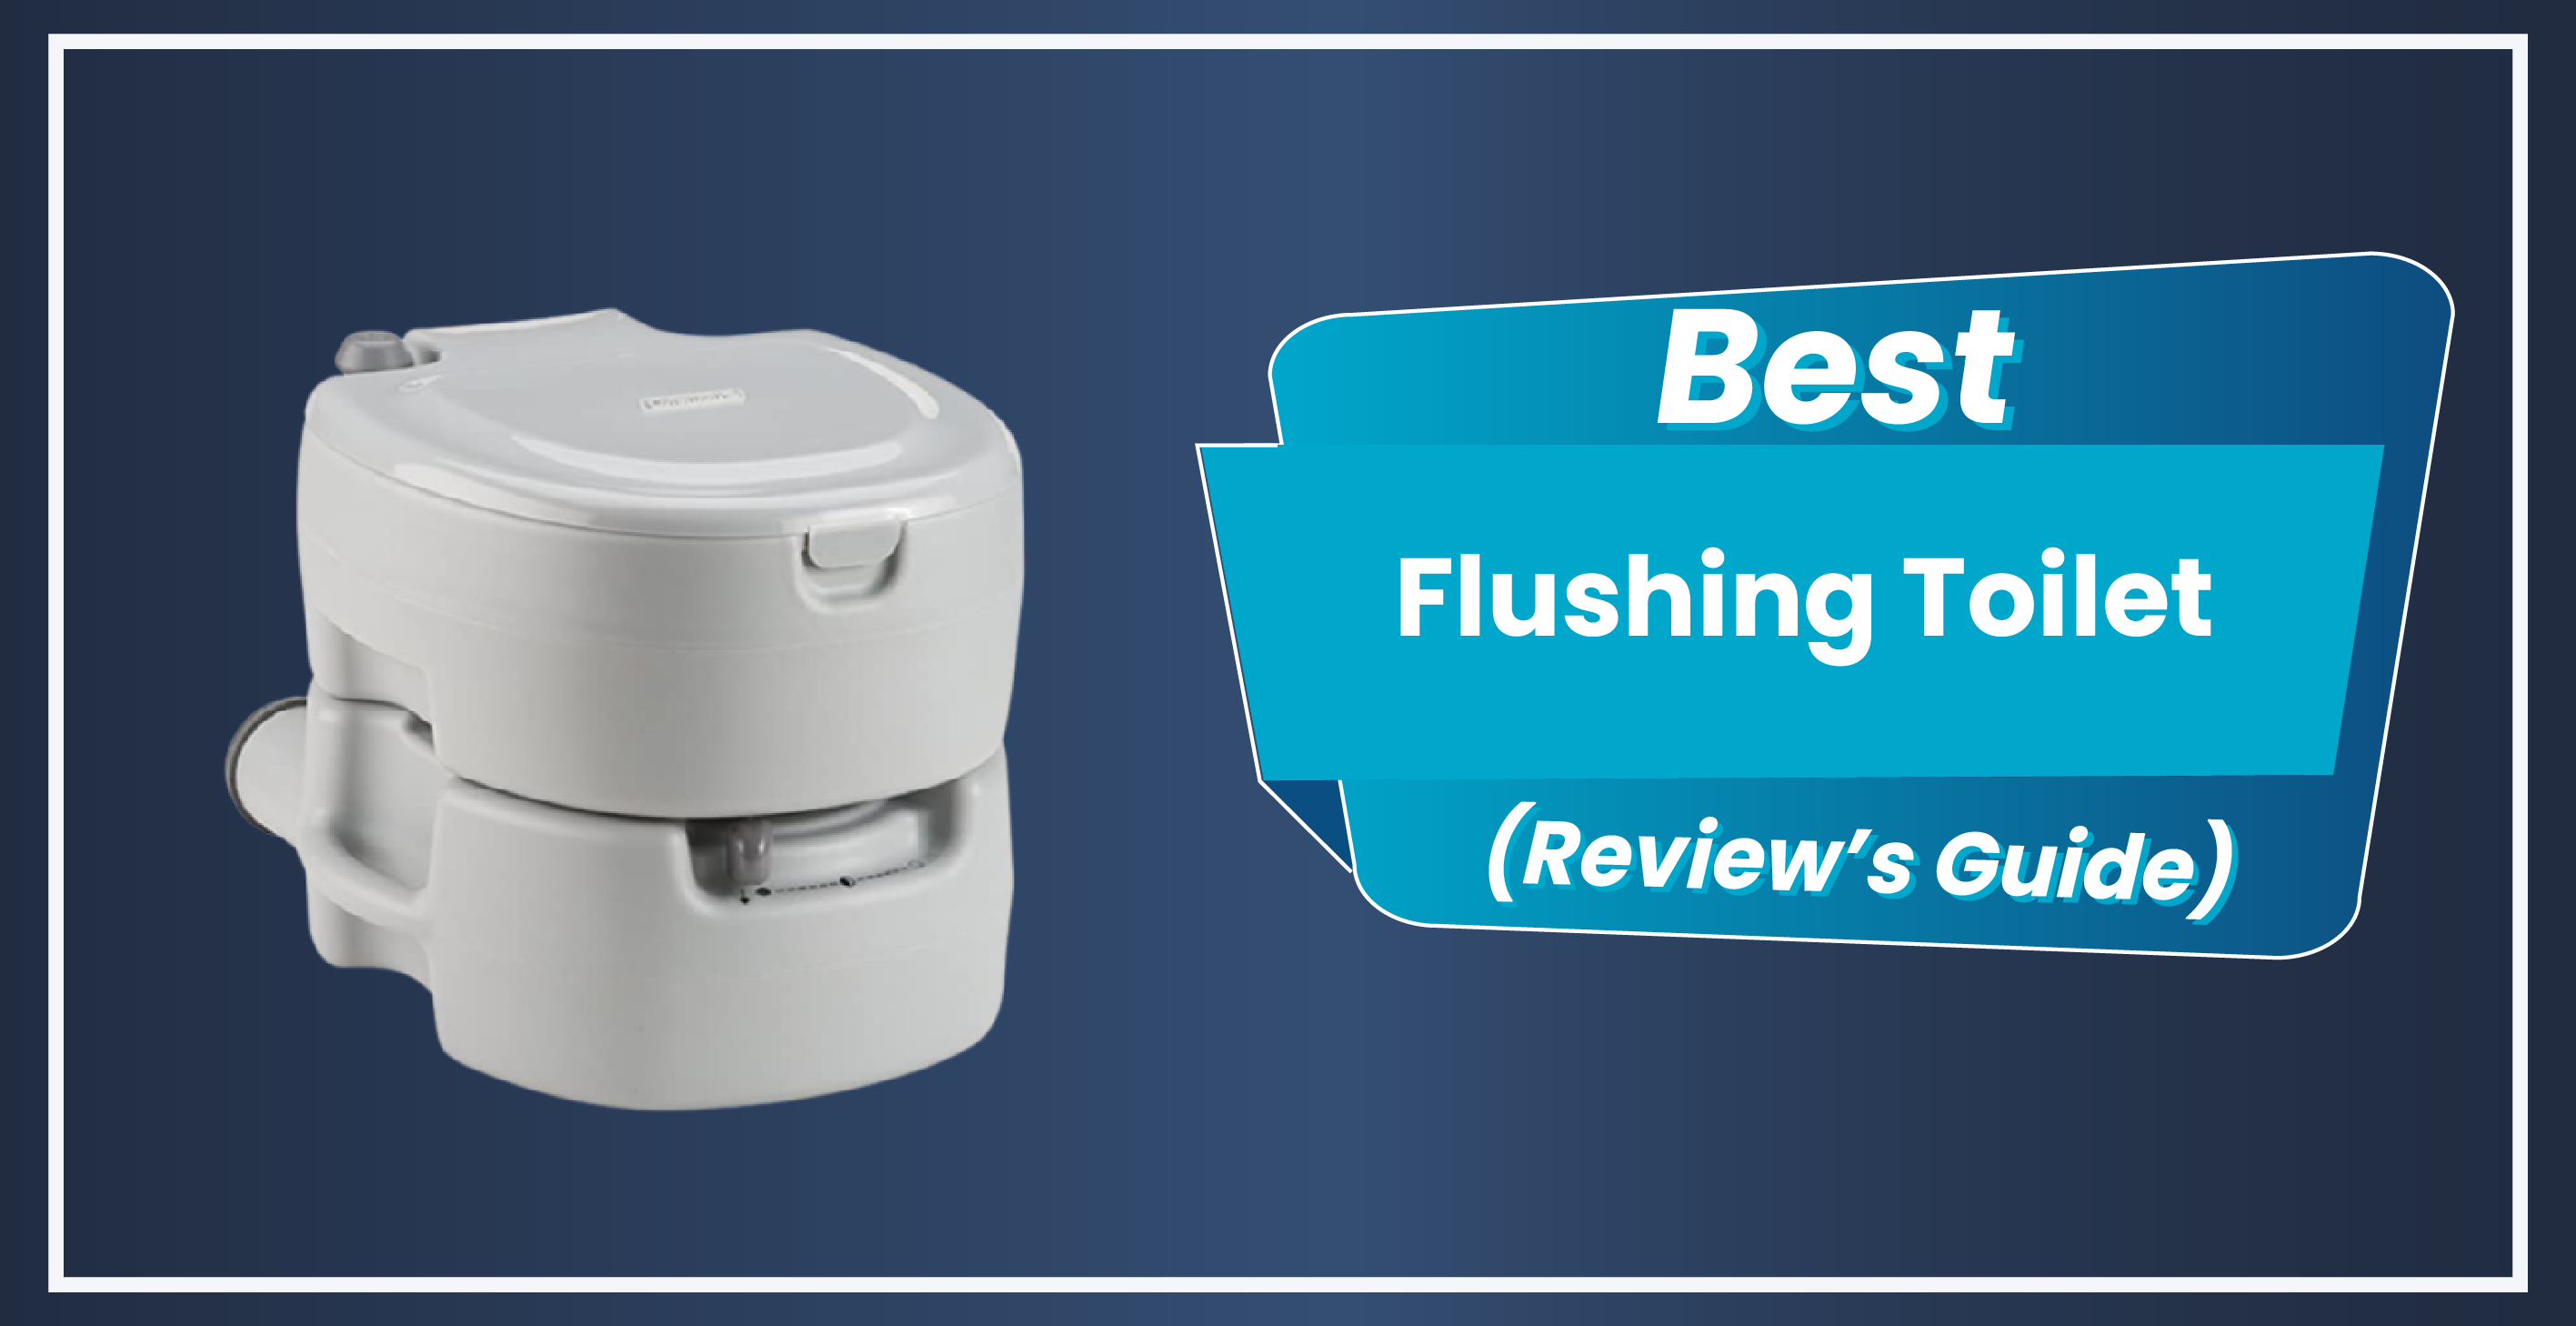 9 Best Flushing Toilet